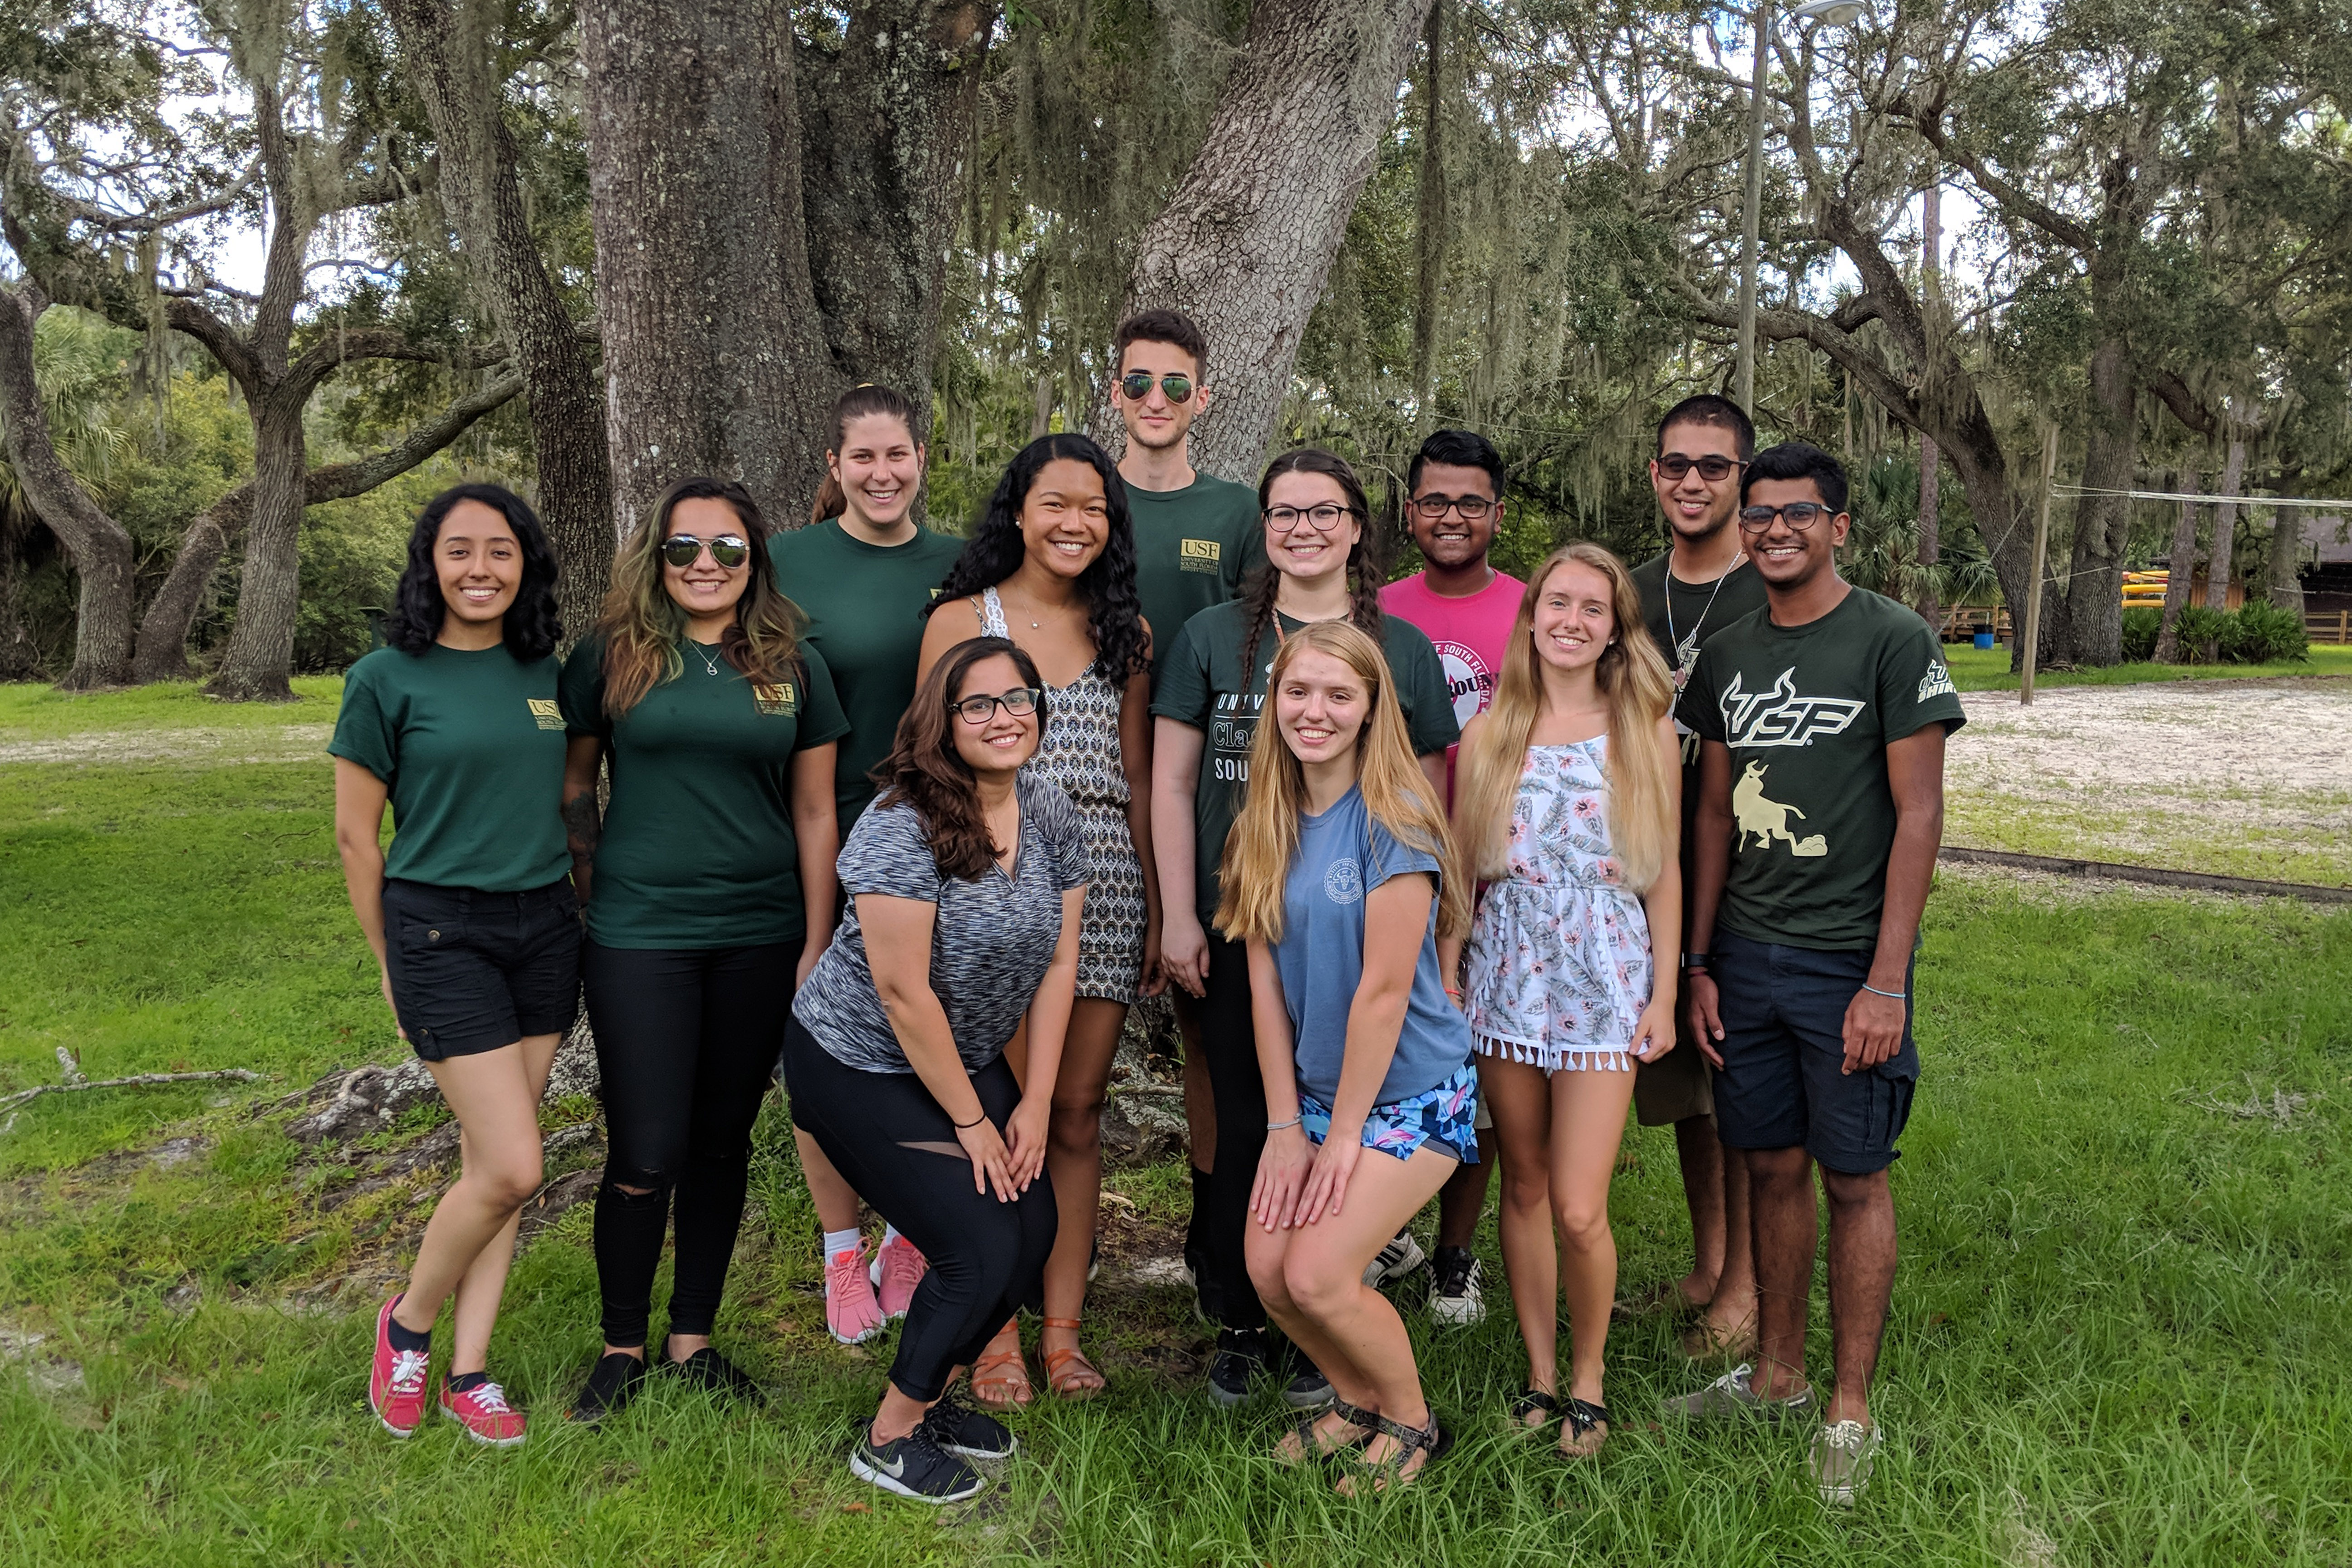 Honors College Student Council members 2018